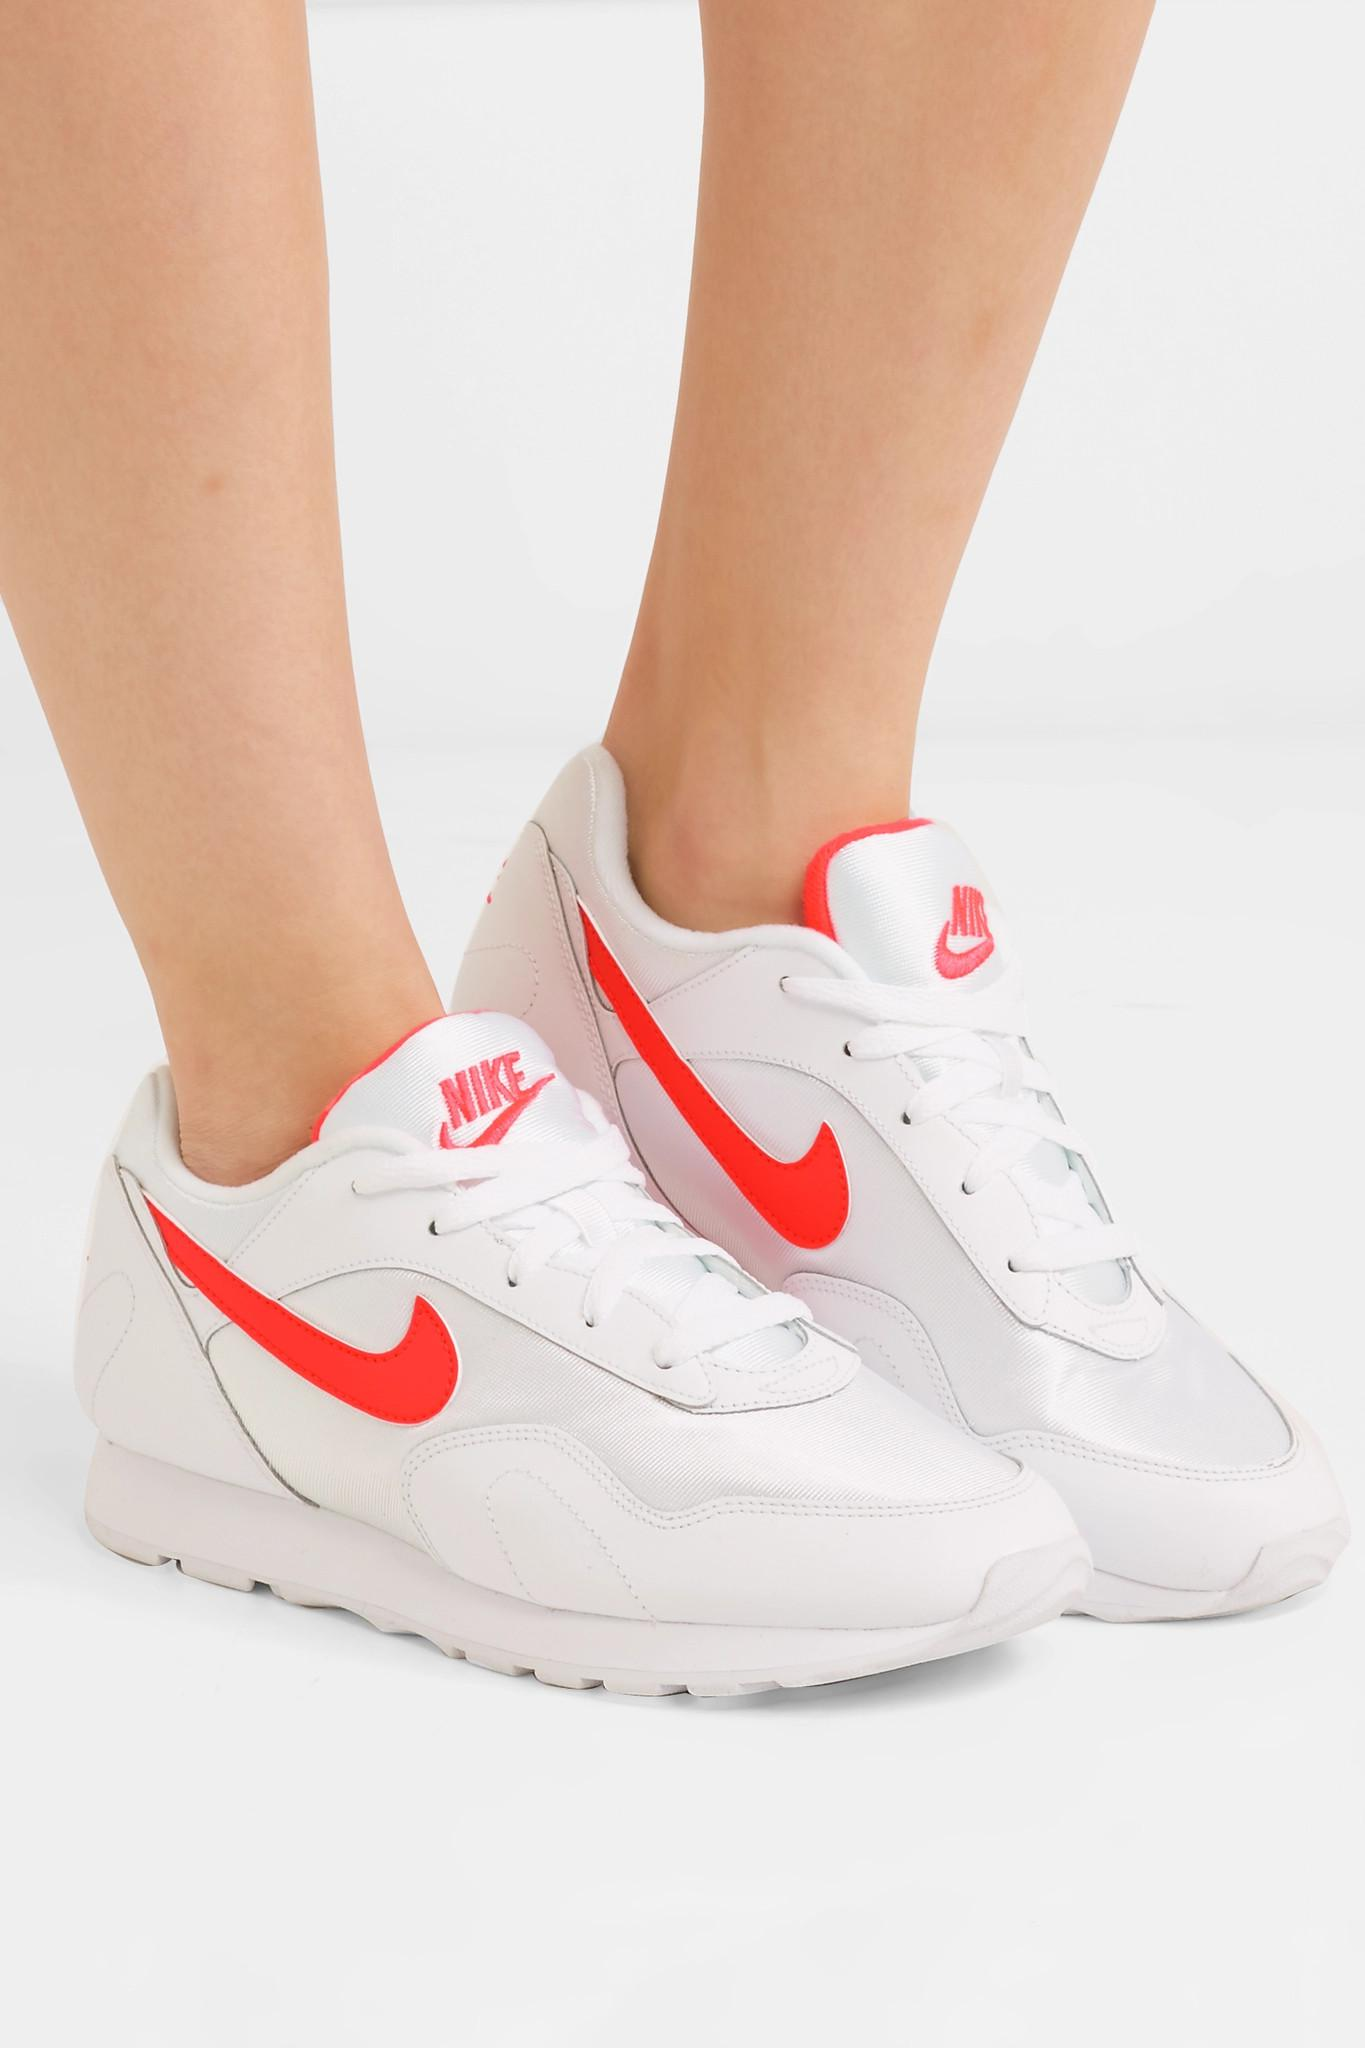 newest bd4c6 aec3f Nike - White Outburst Og Leather And Mesh Sneakers - Lyst. View fullscreen